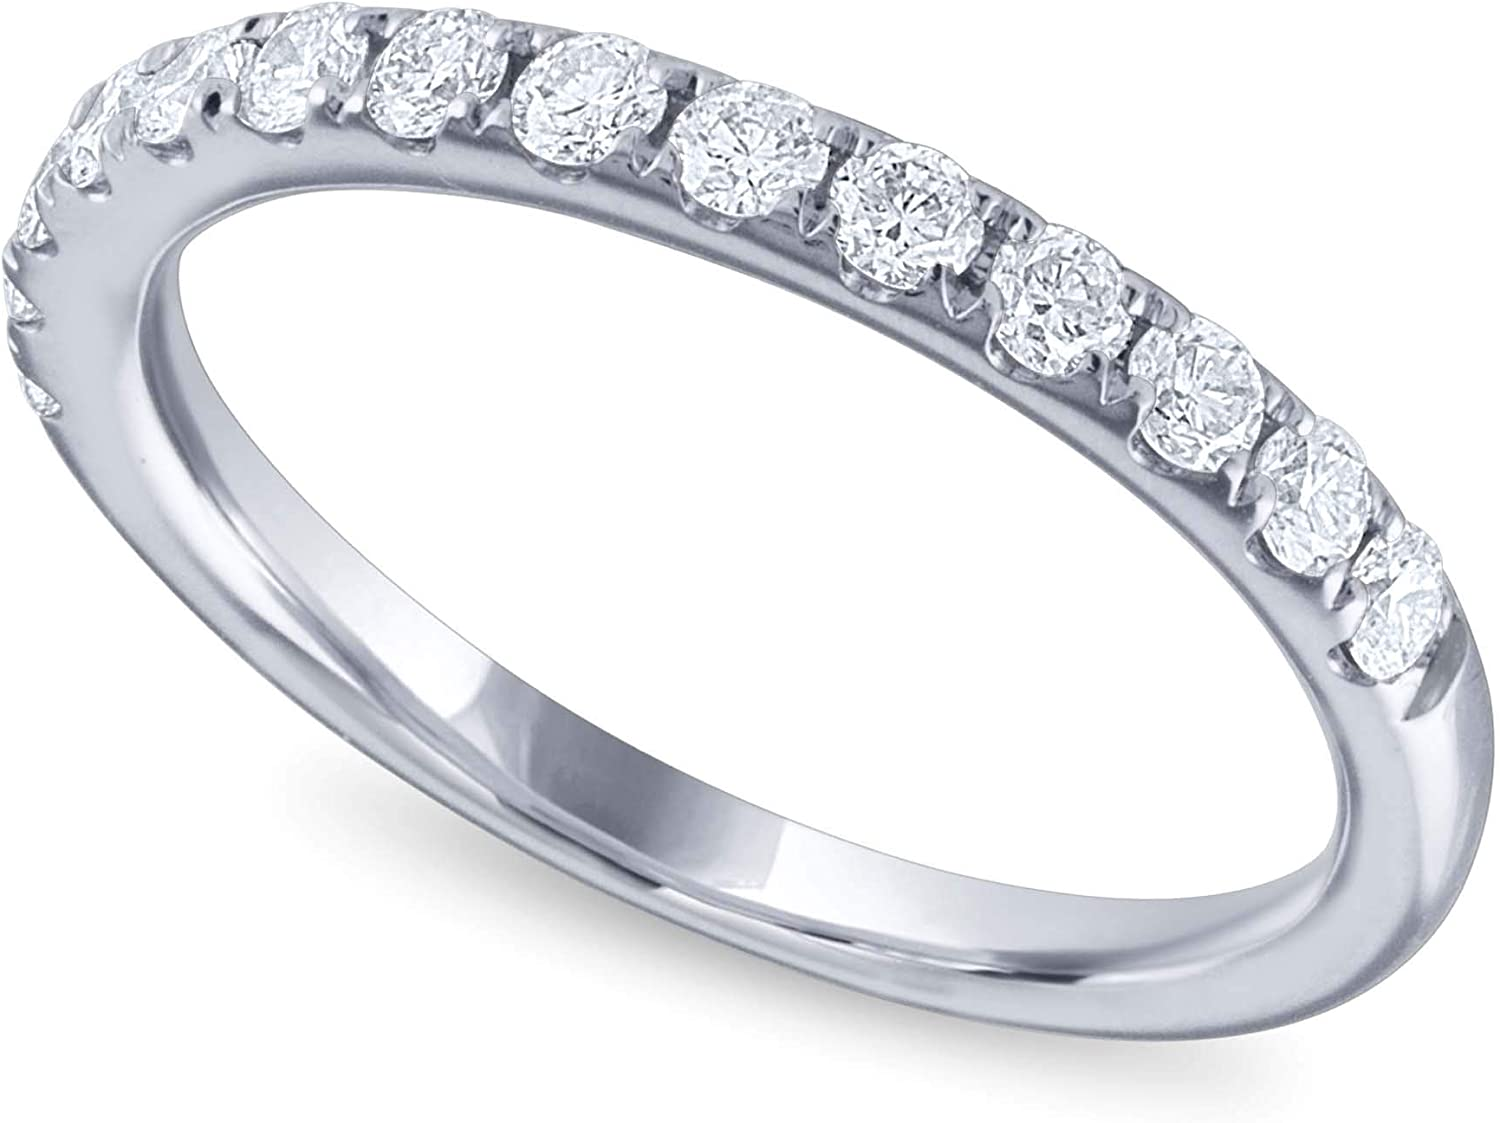 1 2 Carat Round Diamond Ring Band Gold Reservation SEAL limited product ct White I1 14k in H-I